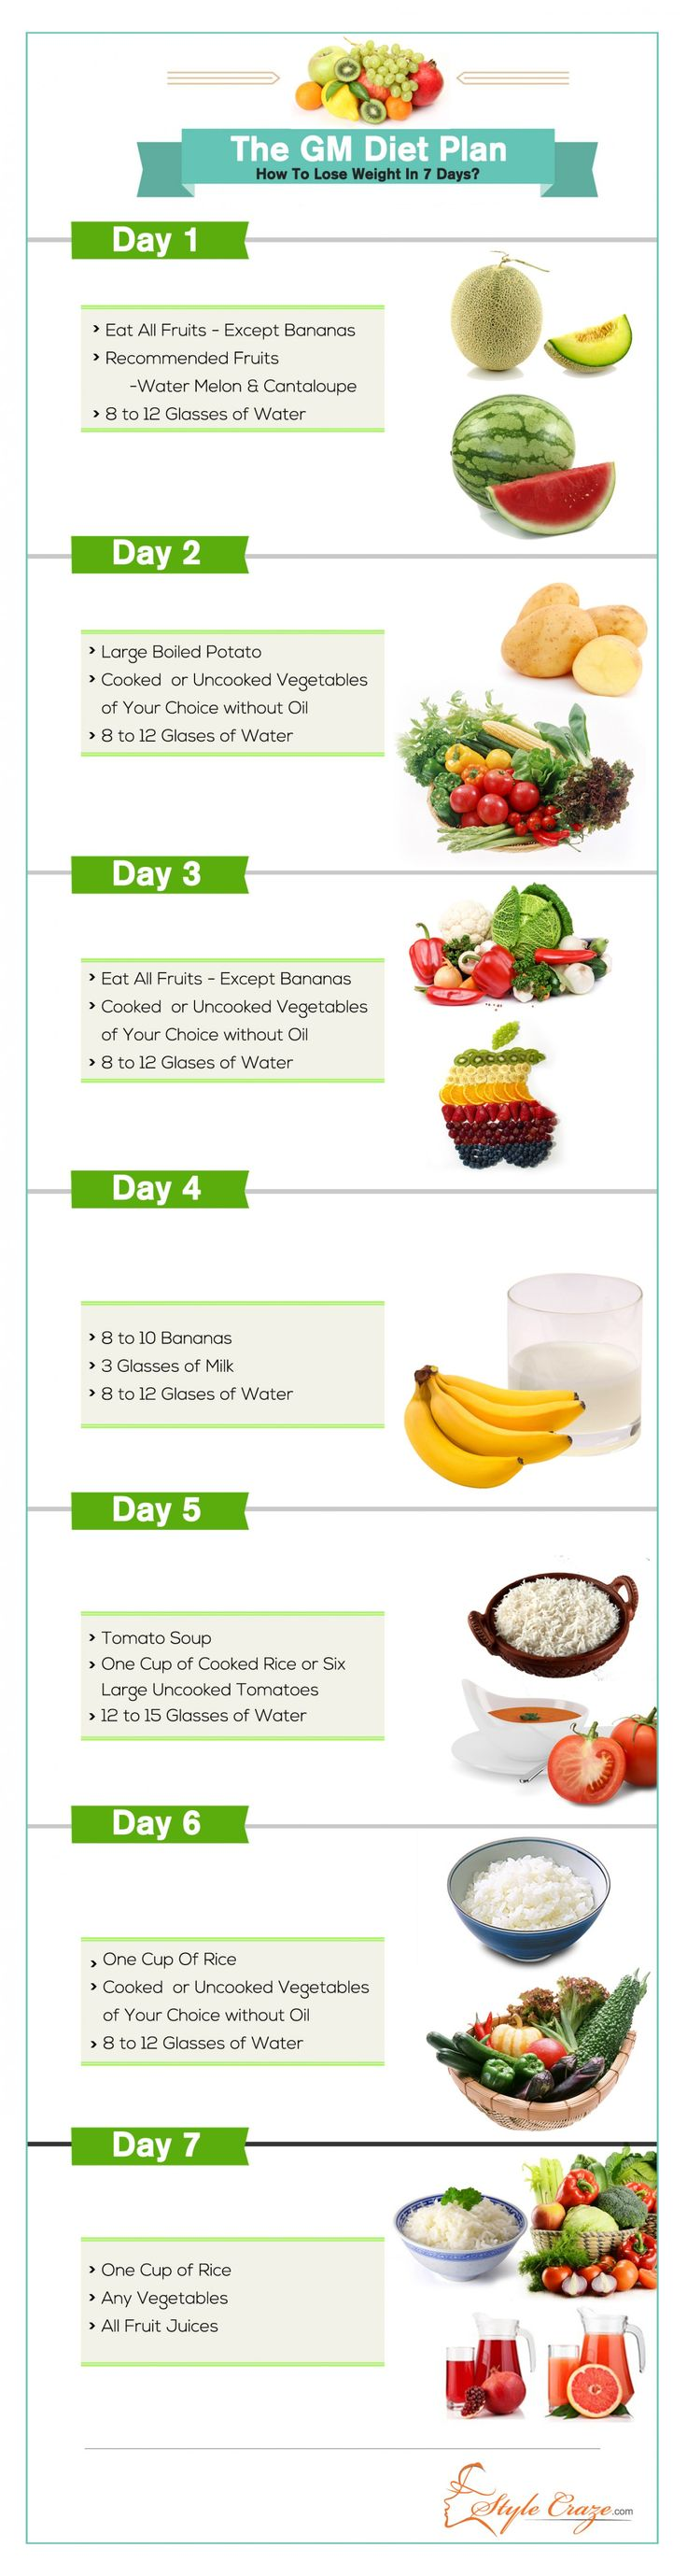 GM Diet Day 7: Successful Weight Loss Results In A Week